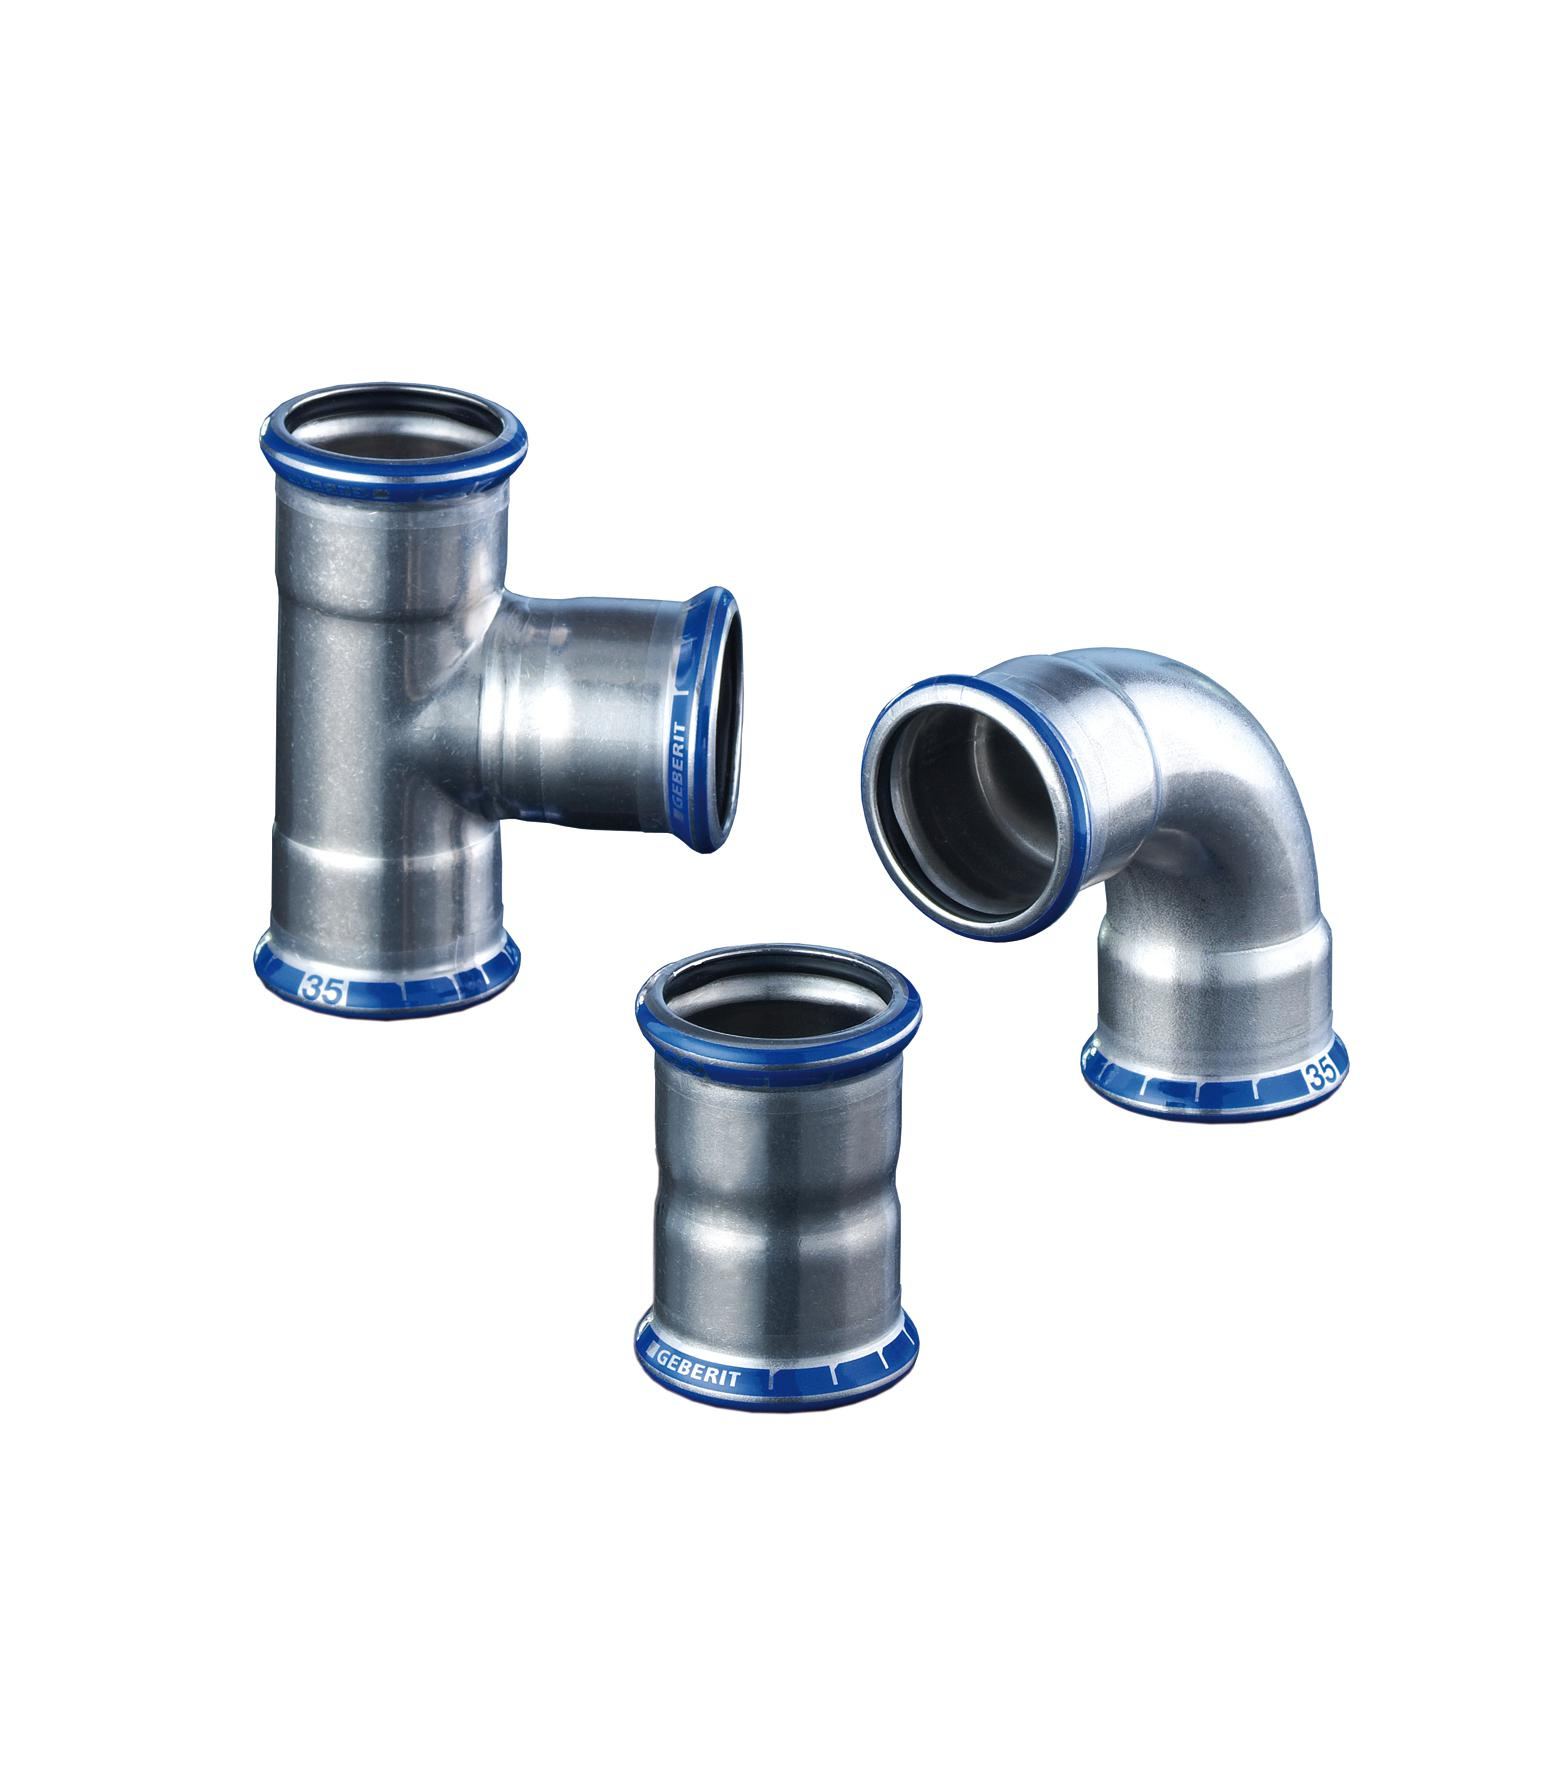 Mapress Edelstahl Fittings